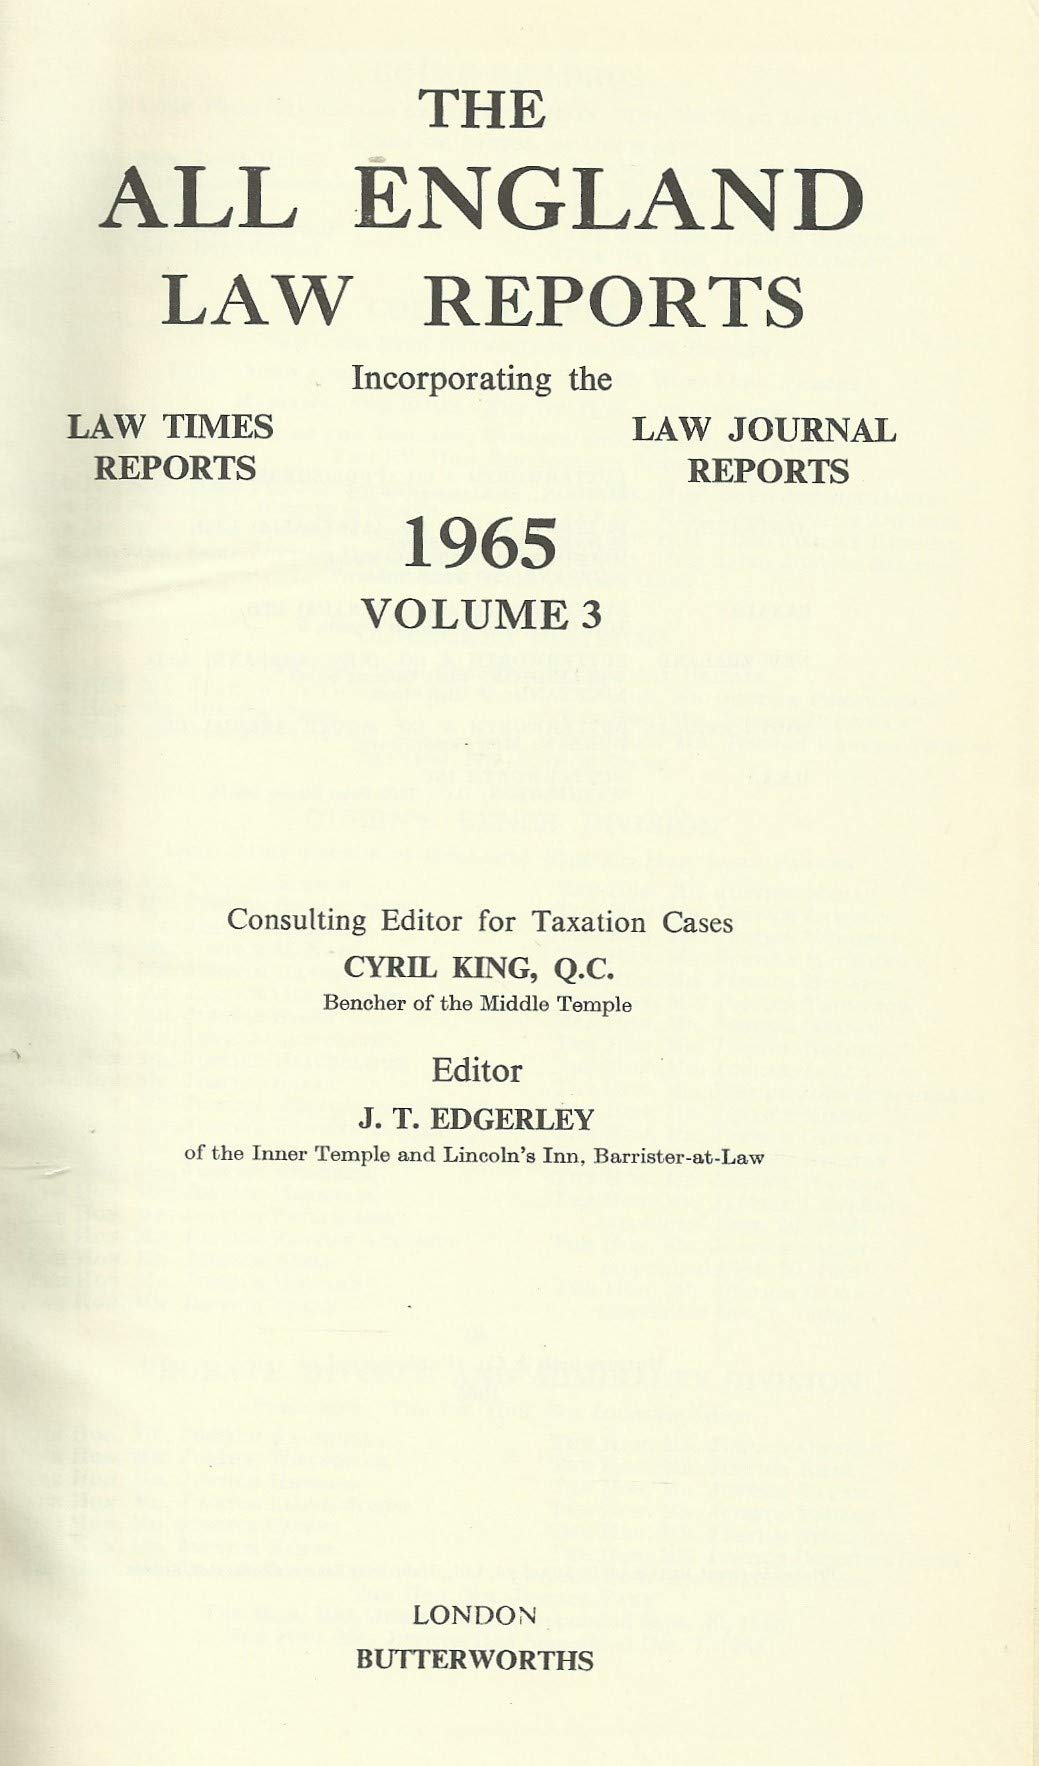 THE ALL ENGLAND LAW REPORTS: 1965, VOLUME III.